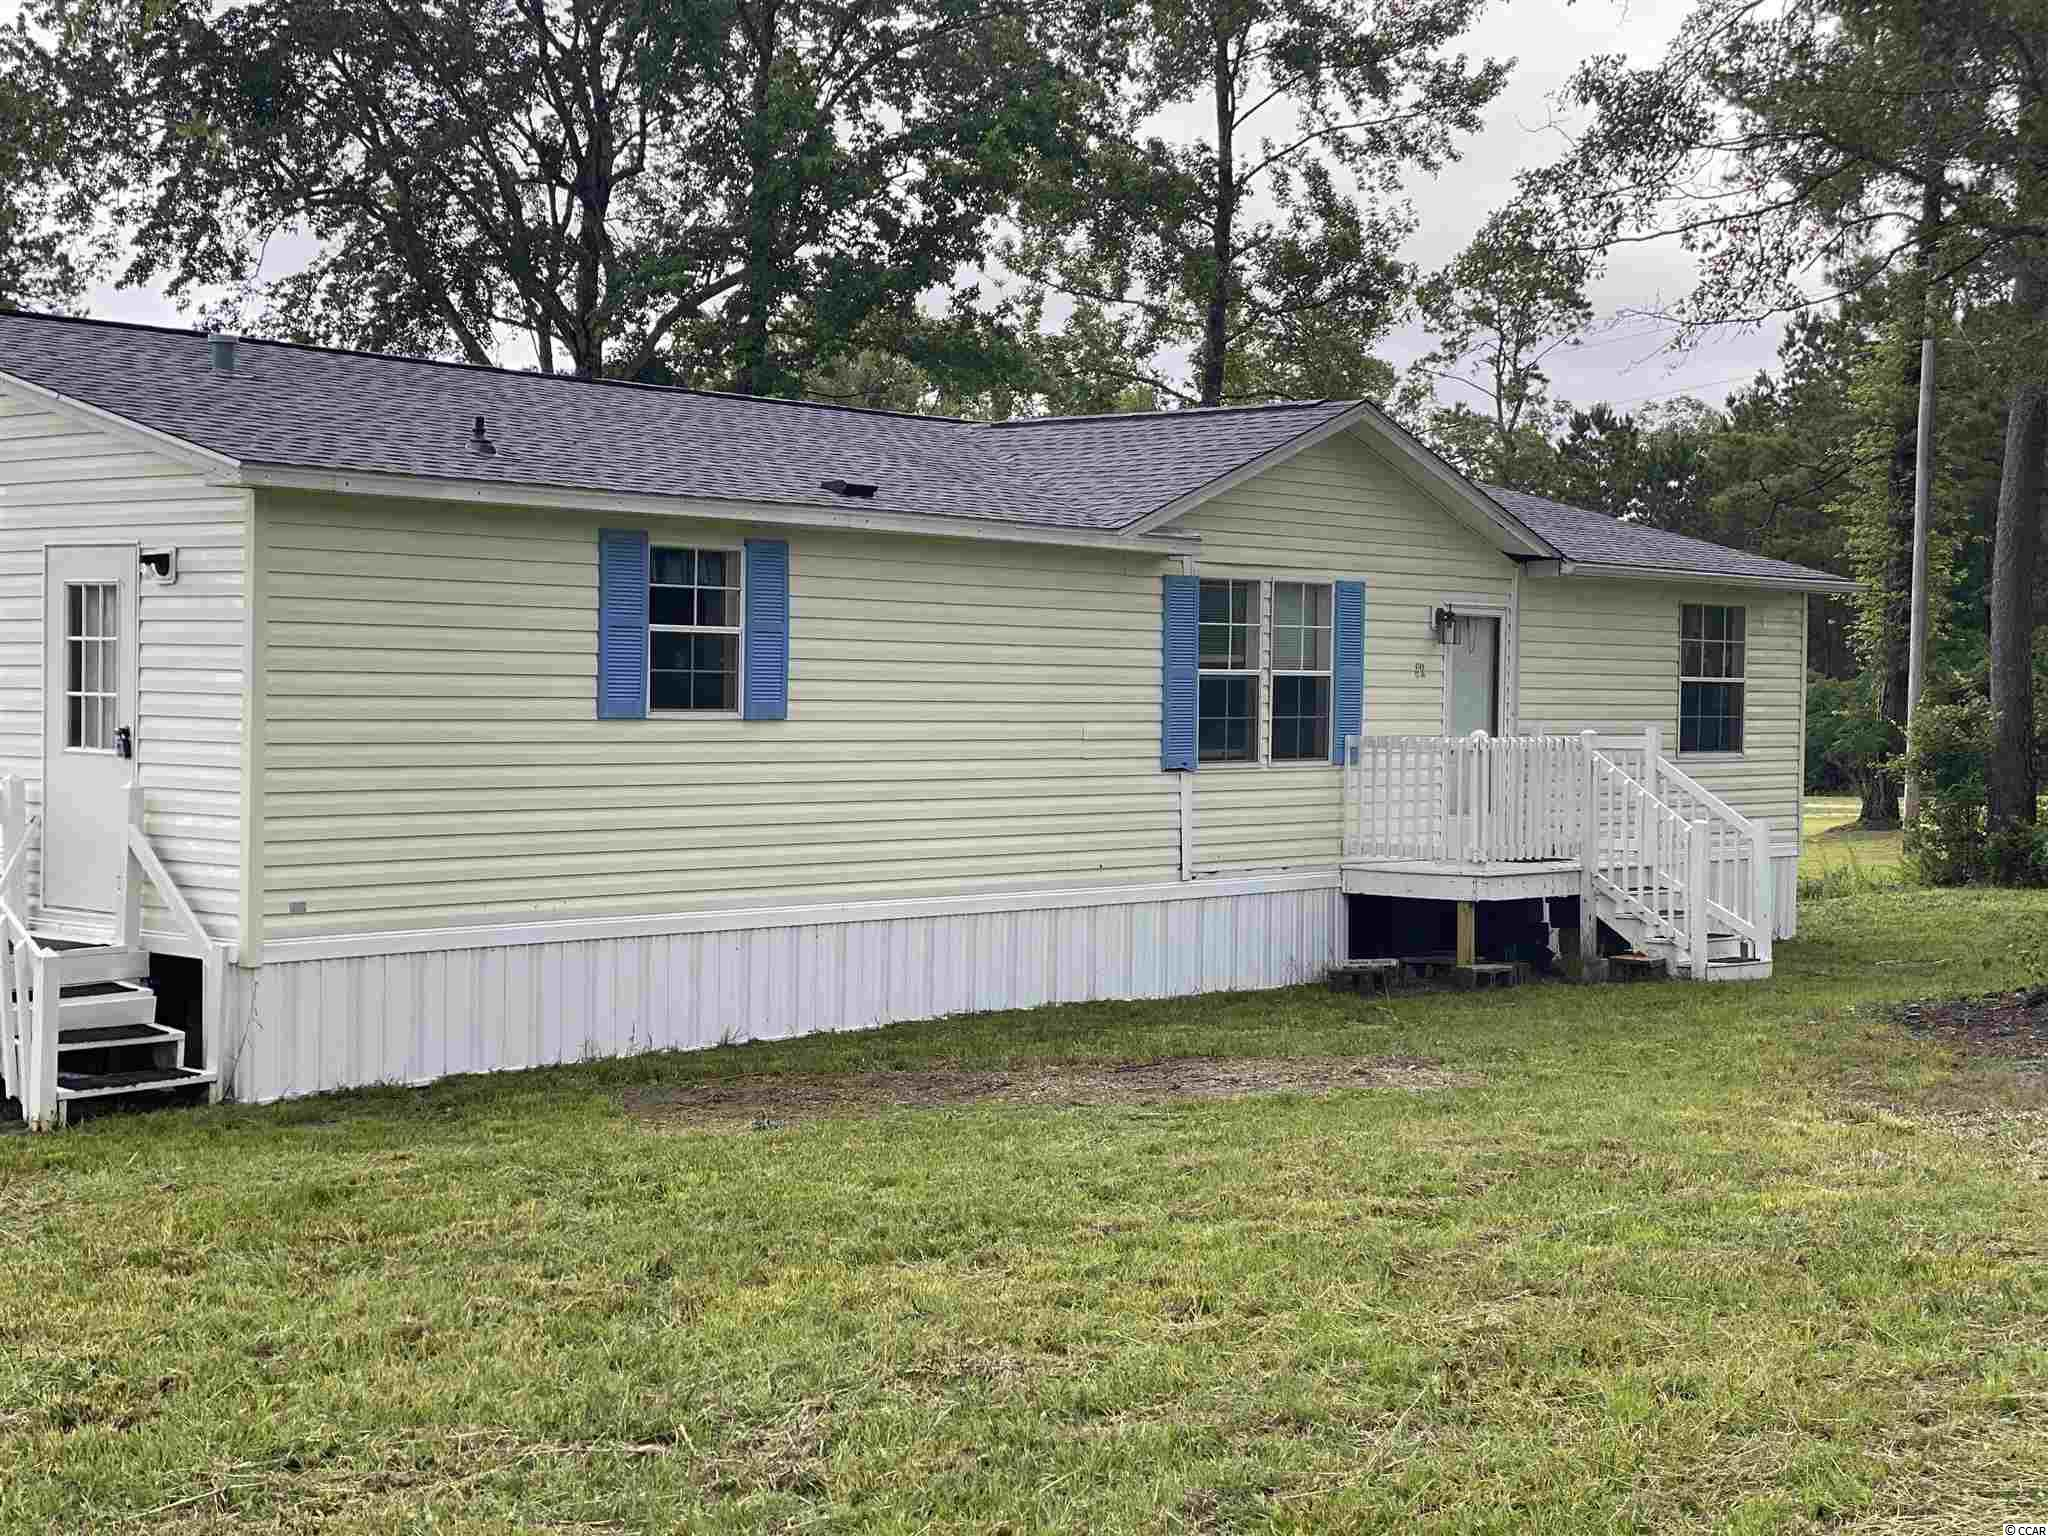 Welcome to this over sided double wide home on leased land in the tranquil lands of Conway. This 3br 2 full bath home sits beautifully on .33 acres. The home was recently moved to this location with all new plumbing, new HVAC lines, new flooring in the master bath and closet, added insulation, new duct work, new underpinning, and wood burning fireplace which has never been used before! A new 30 year roof was installed in 2019 and the HVAC system was bought in 2015. Schedule your showing today!